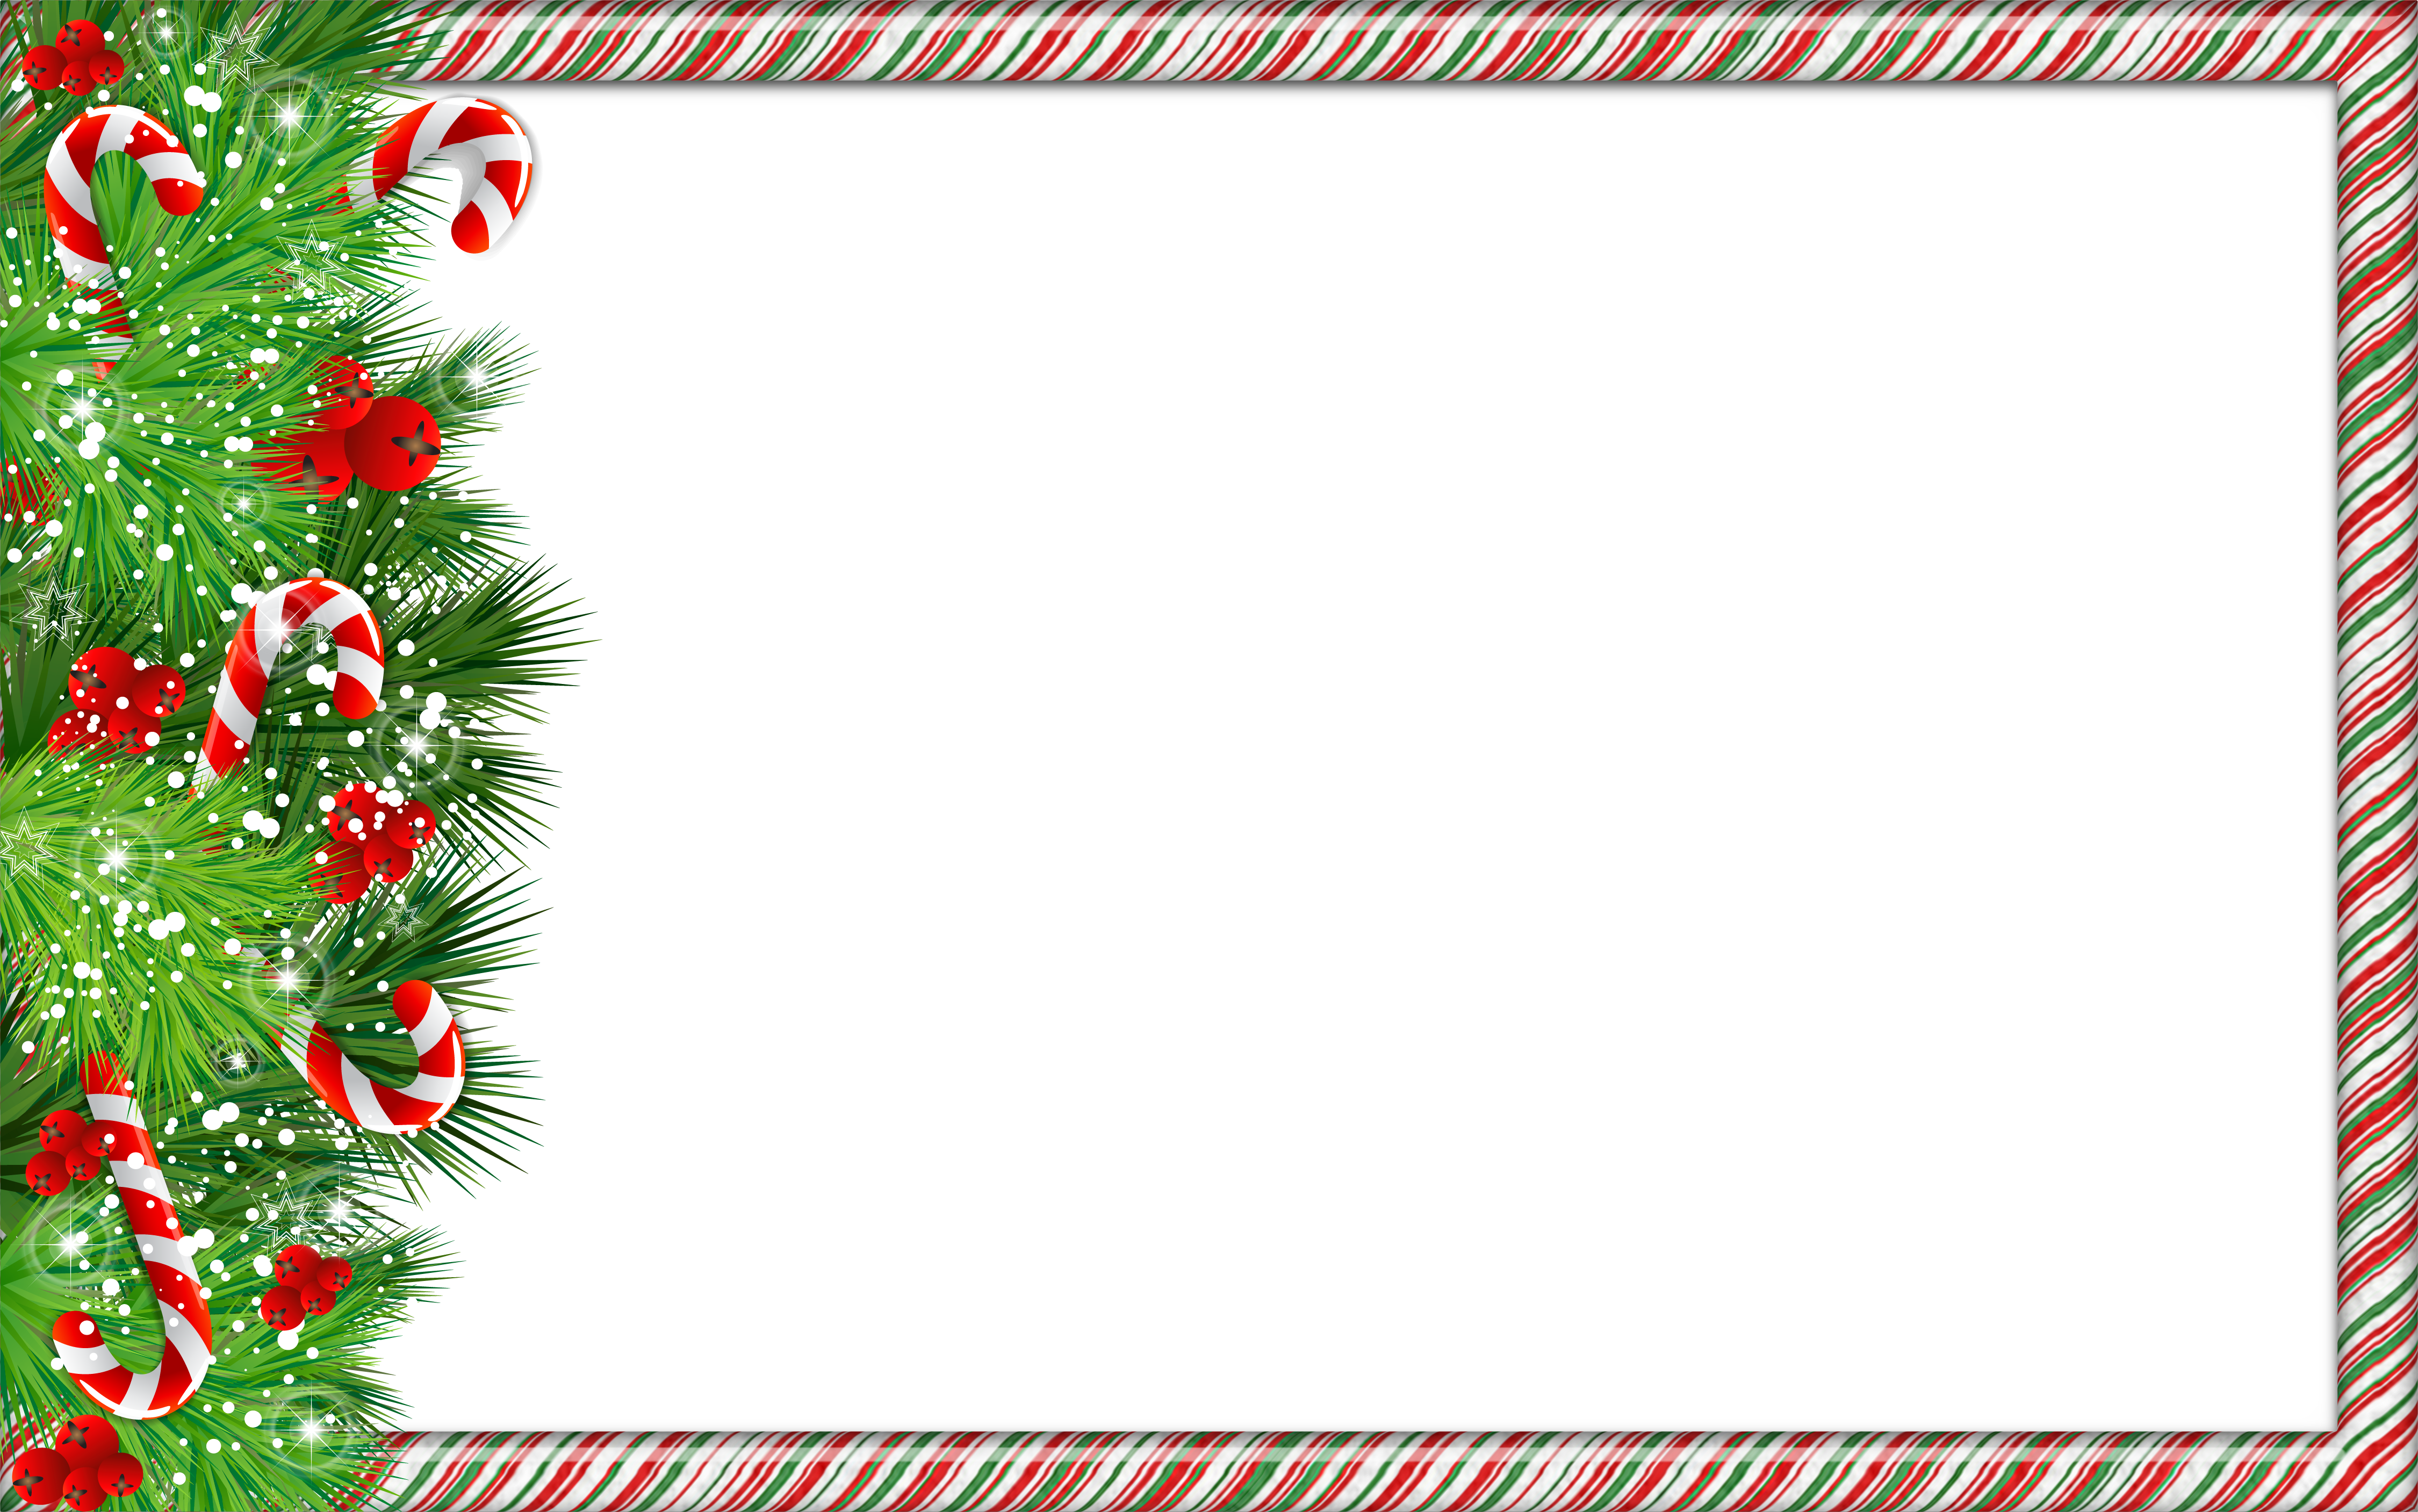 Christmas frame png. Photo with candy canes